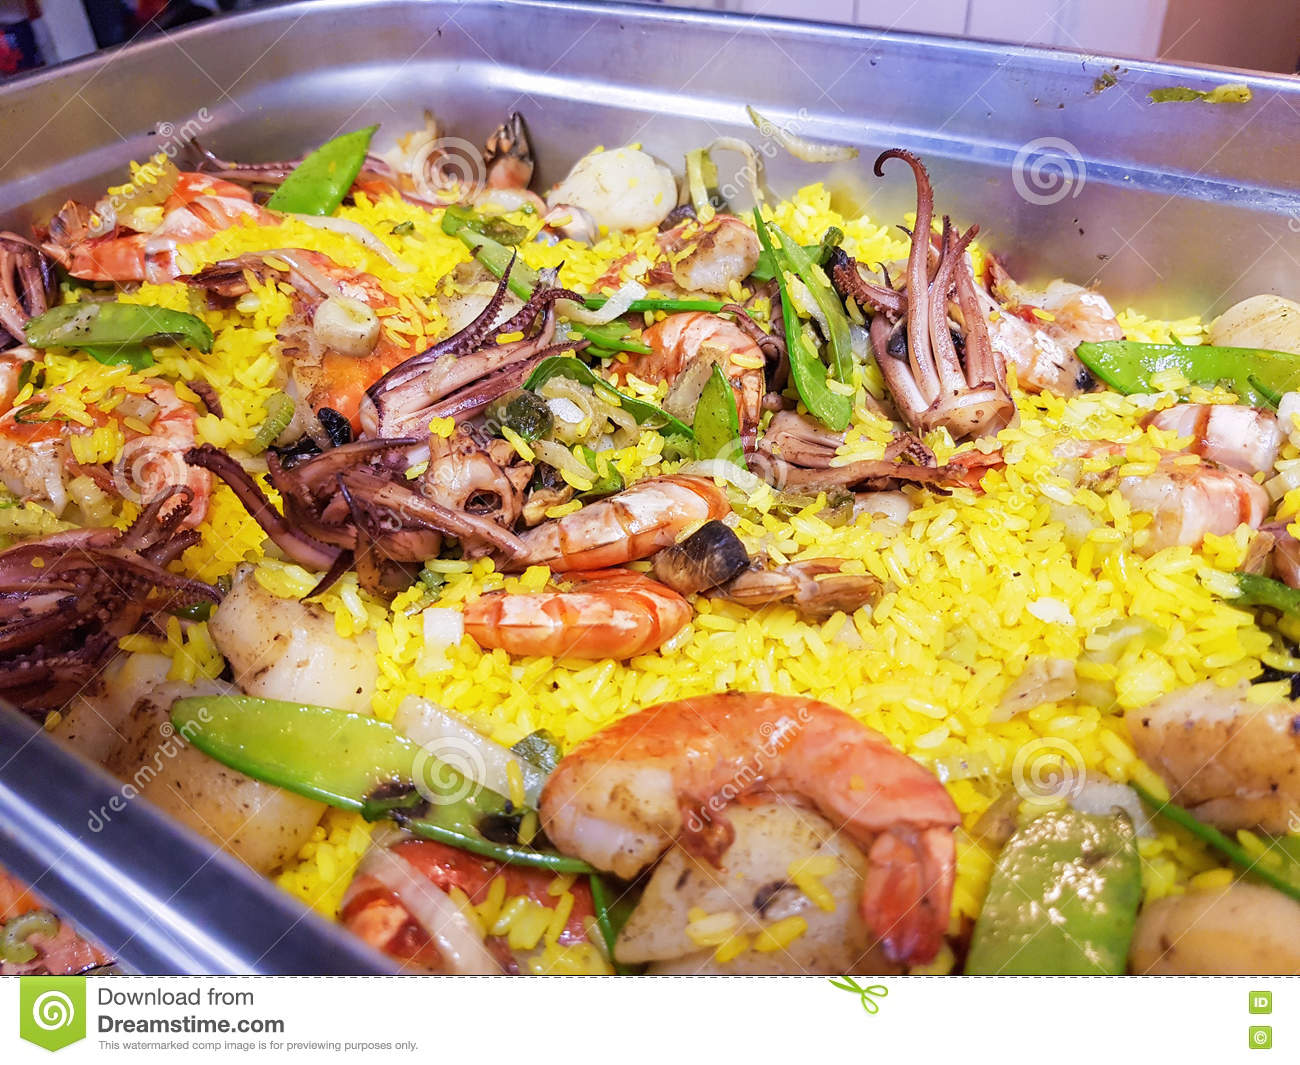 Fresh seafood paella, with octopus, scallop, shrimp and salmon.